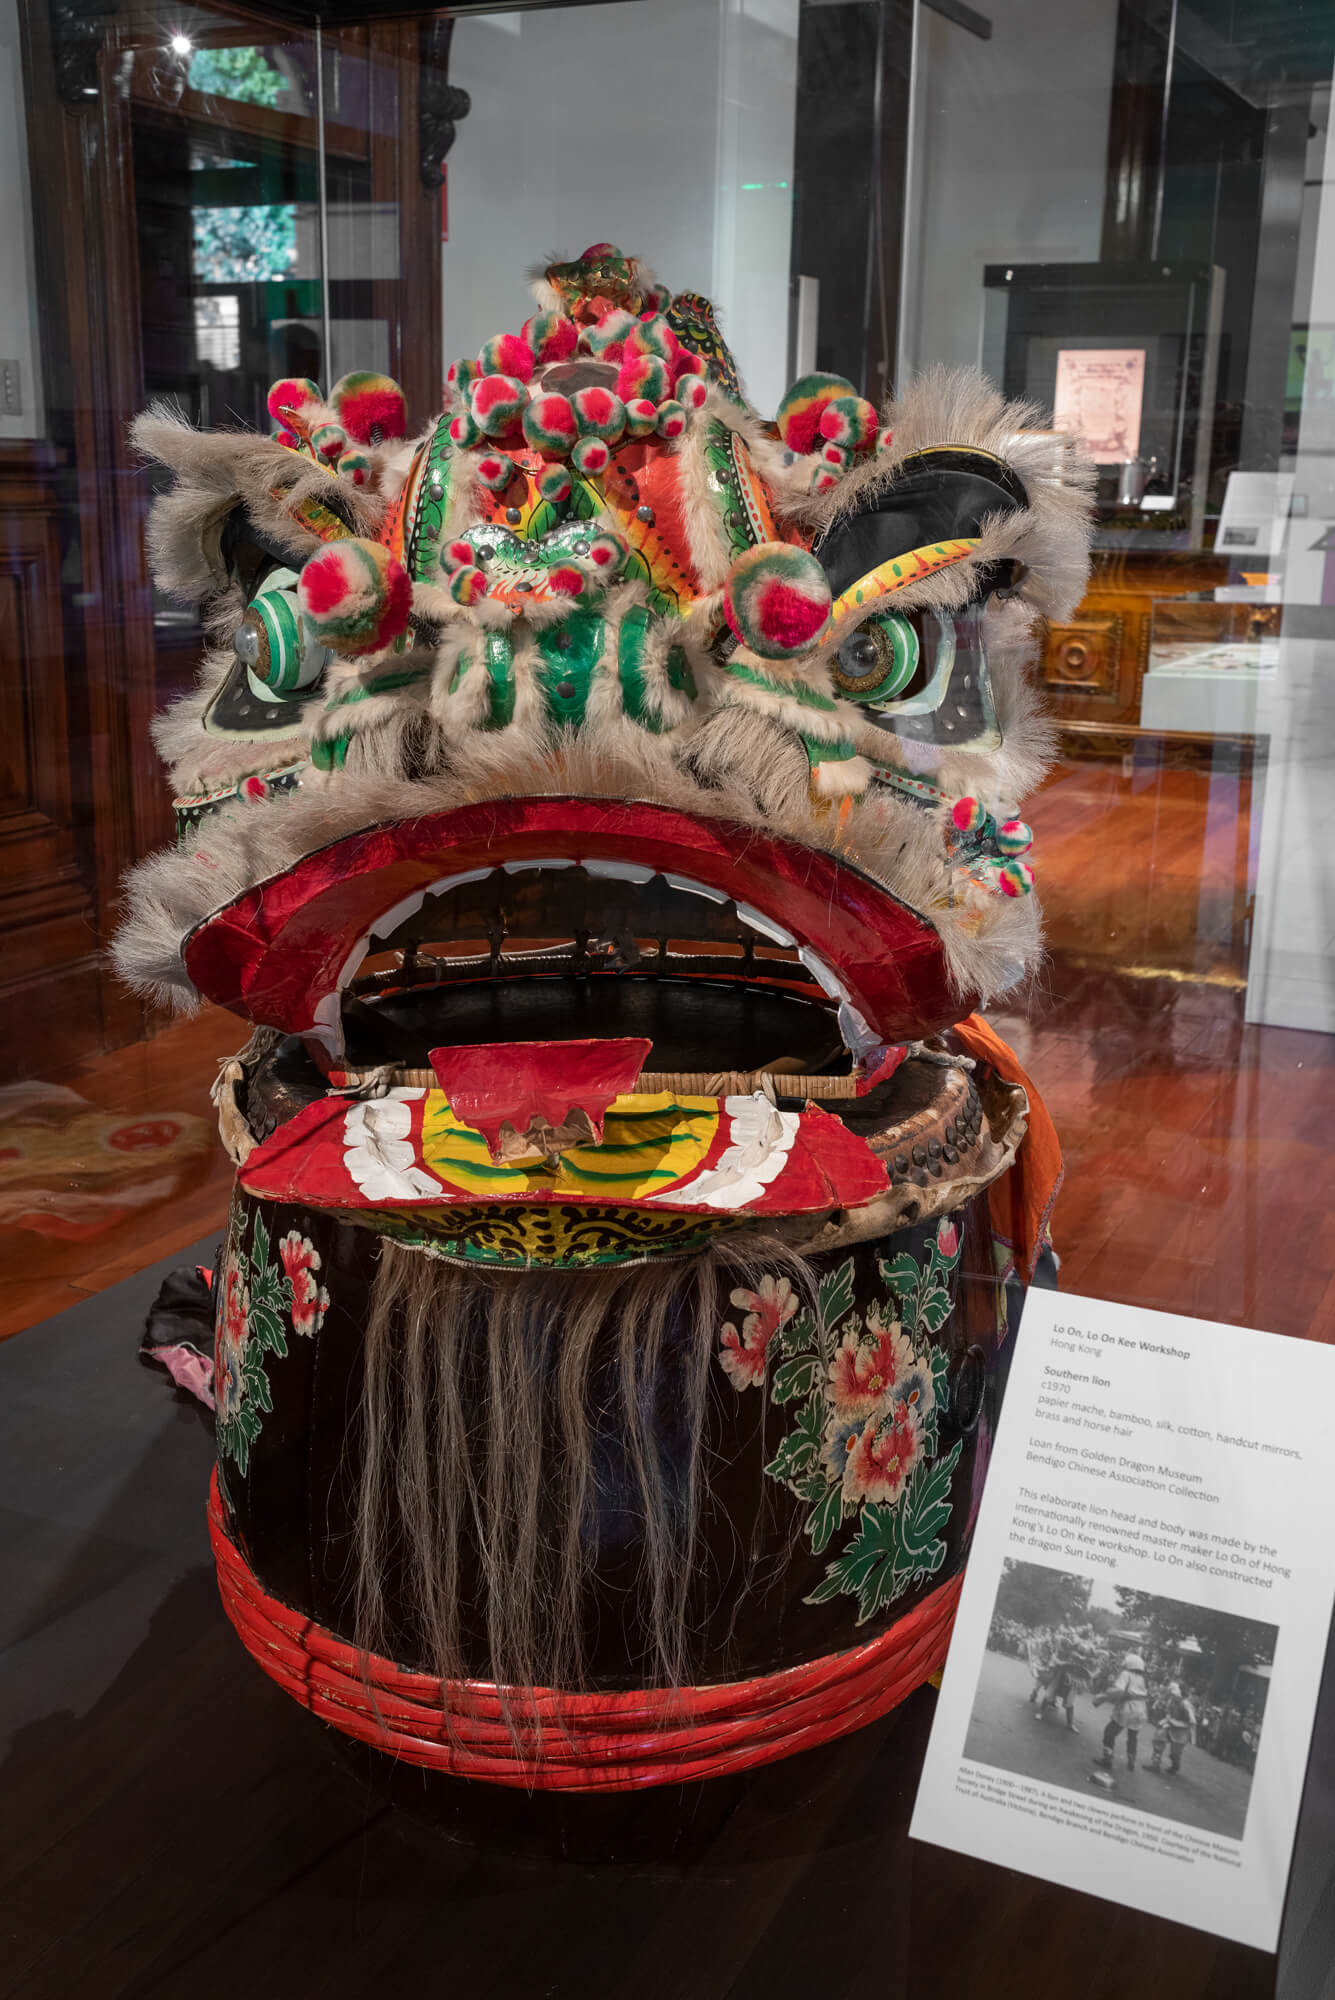 Lo On, Lo On Kee Workshop, Hong Kong, Southern lion, c1970, papier mache, bamboo, silk, cotton, handcut mirrors, brass and horse hair. Hand painted drum, c1950, wood, paint, skin, cane, metal. Loans from Golden Dragon Museum, Bendigo Chinese Association Collection. Photograph: Ian Hill